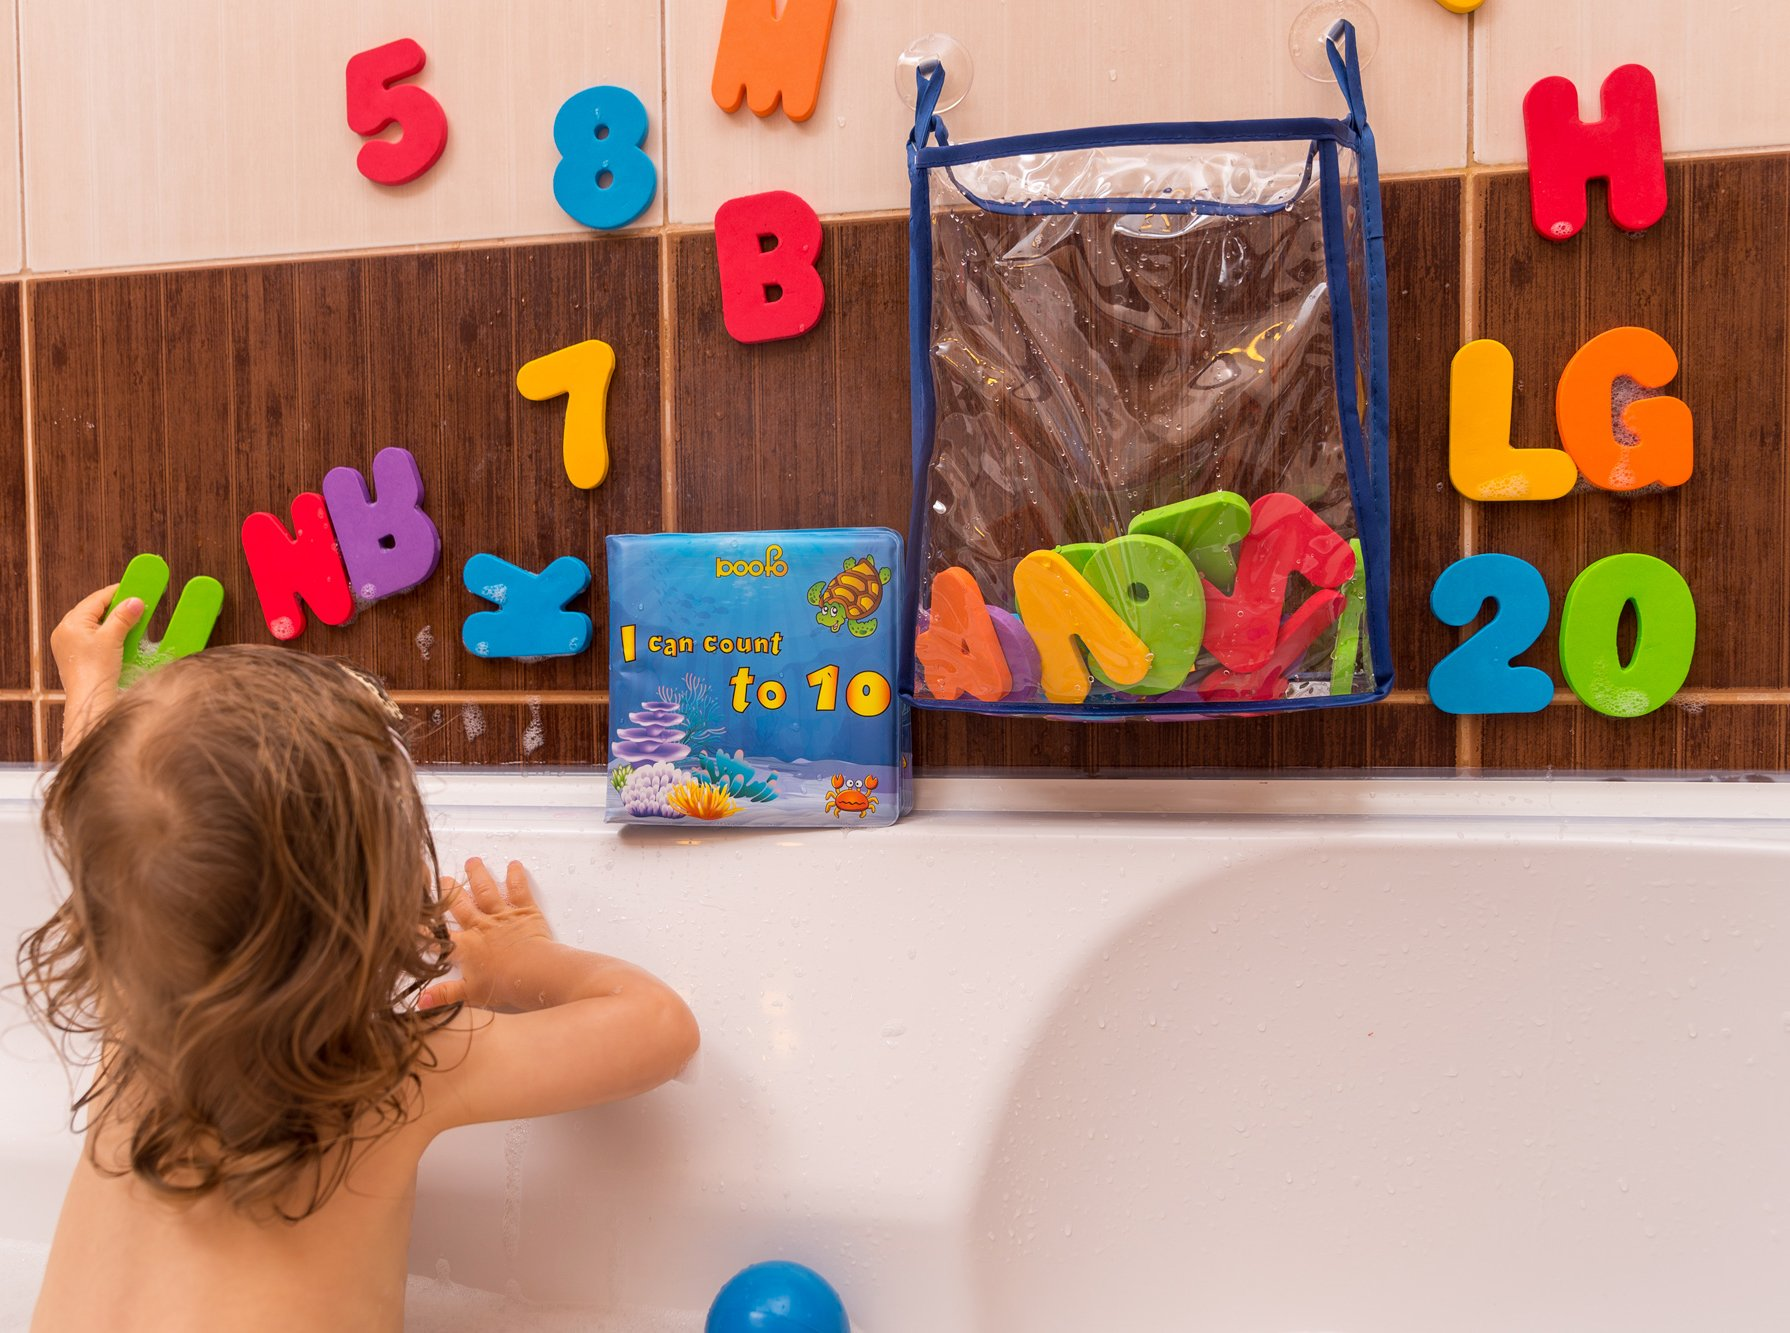 gufolino Baby Bath Toys - 36 Foam Letters and Numbers + Bathtub Toys Organizer and Inflatable Waterproof Book for Toddlers (Multicolor) by gufolino (Image #3)